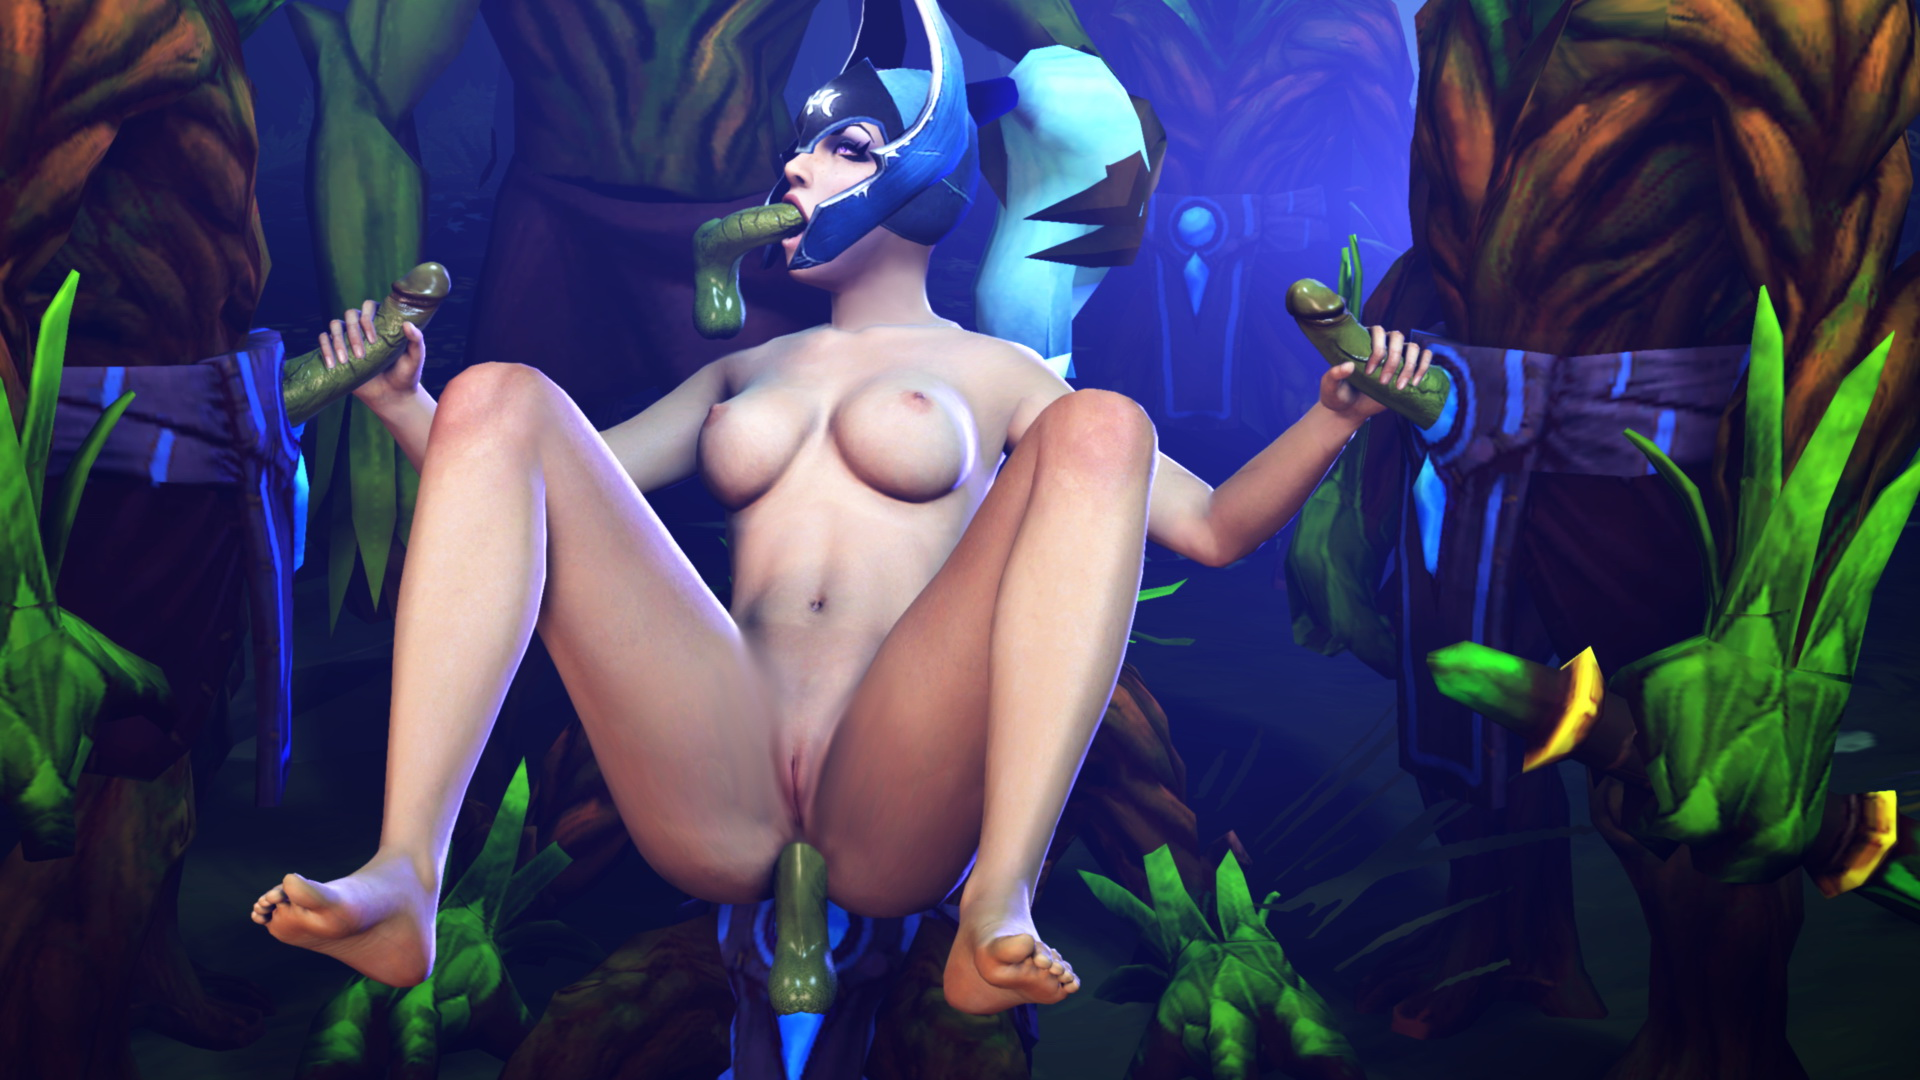 Hentai dota 2 hd nude movie